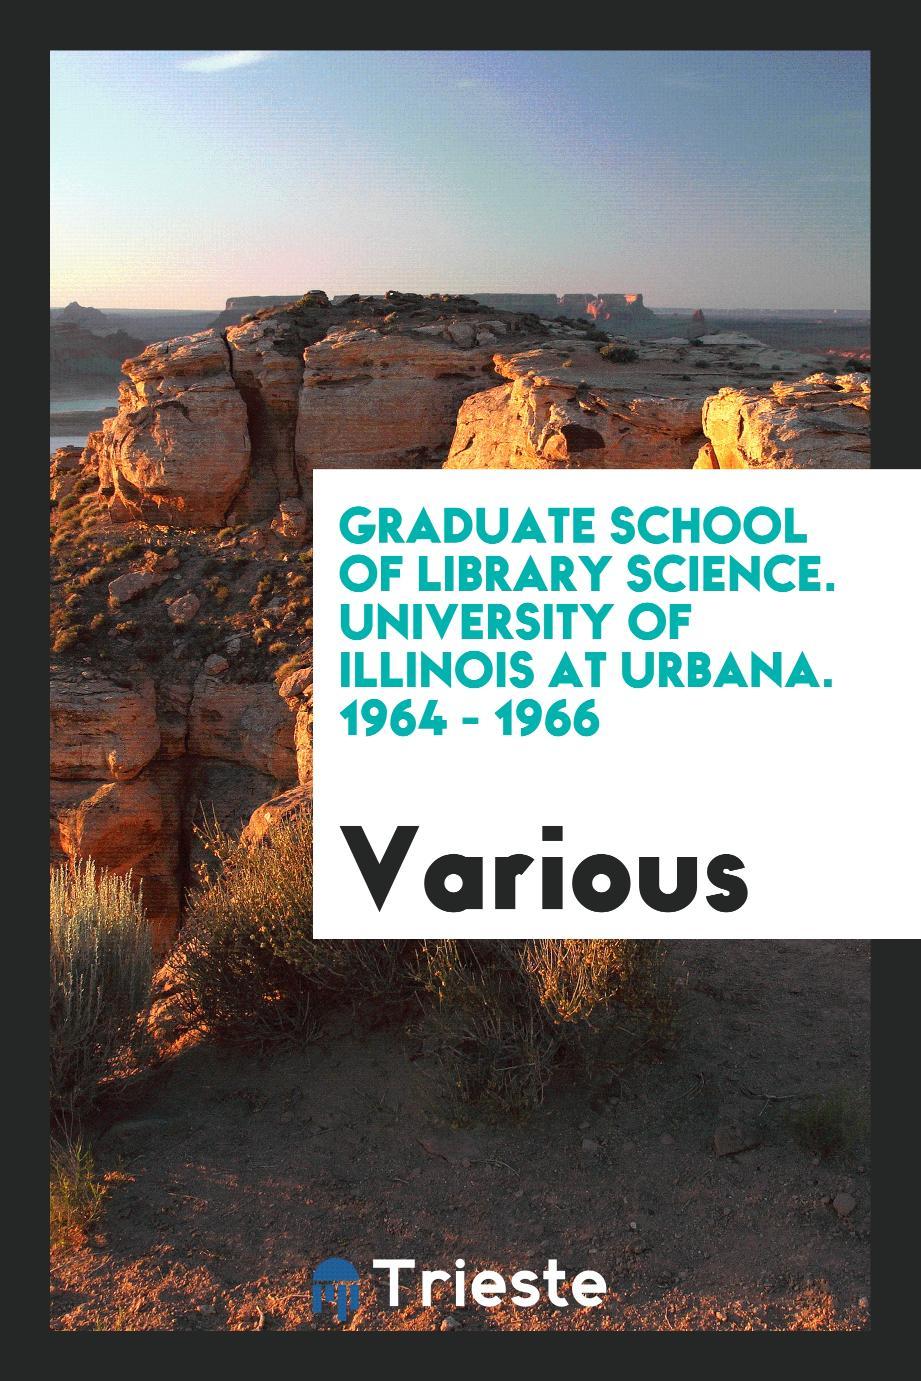 Graduate School of Library Science. University of Illinois at Urbana. 1964 - 1966